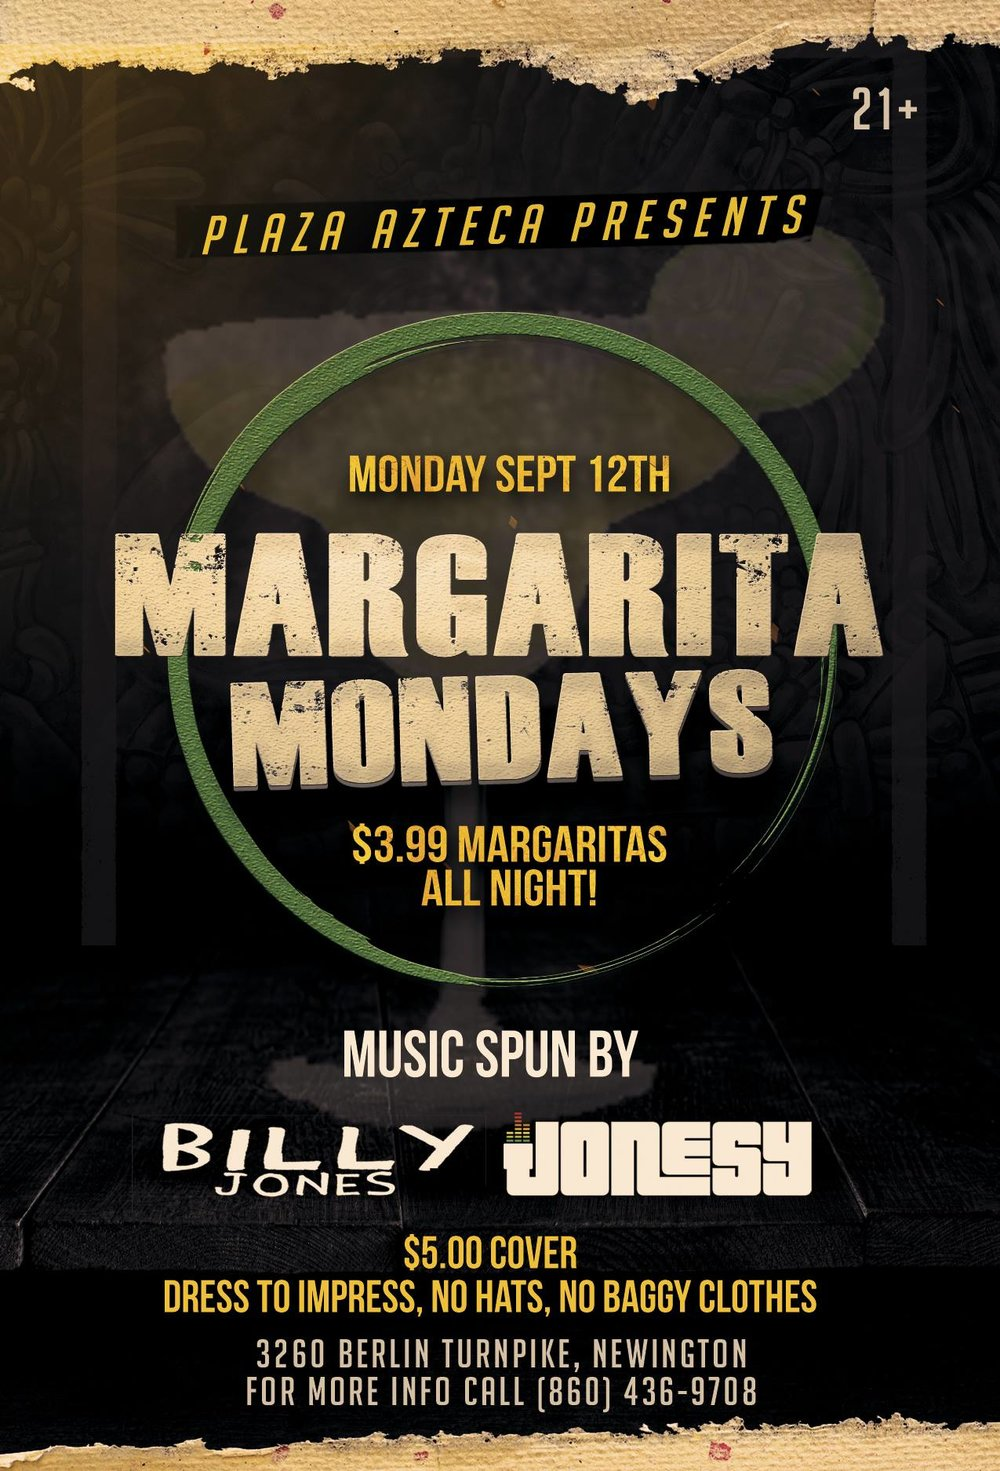 Monday, September 12  th join me at Plaza Azteca in Newington, CT for Margarita Monday with music by Billy Jones & yours truly 9pm-close.  $3.99 Margaritas all night long!  Meet me there!